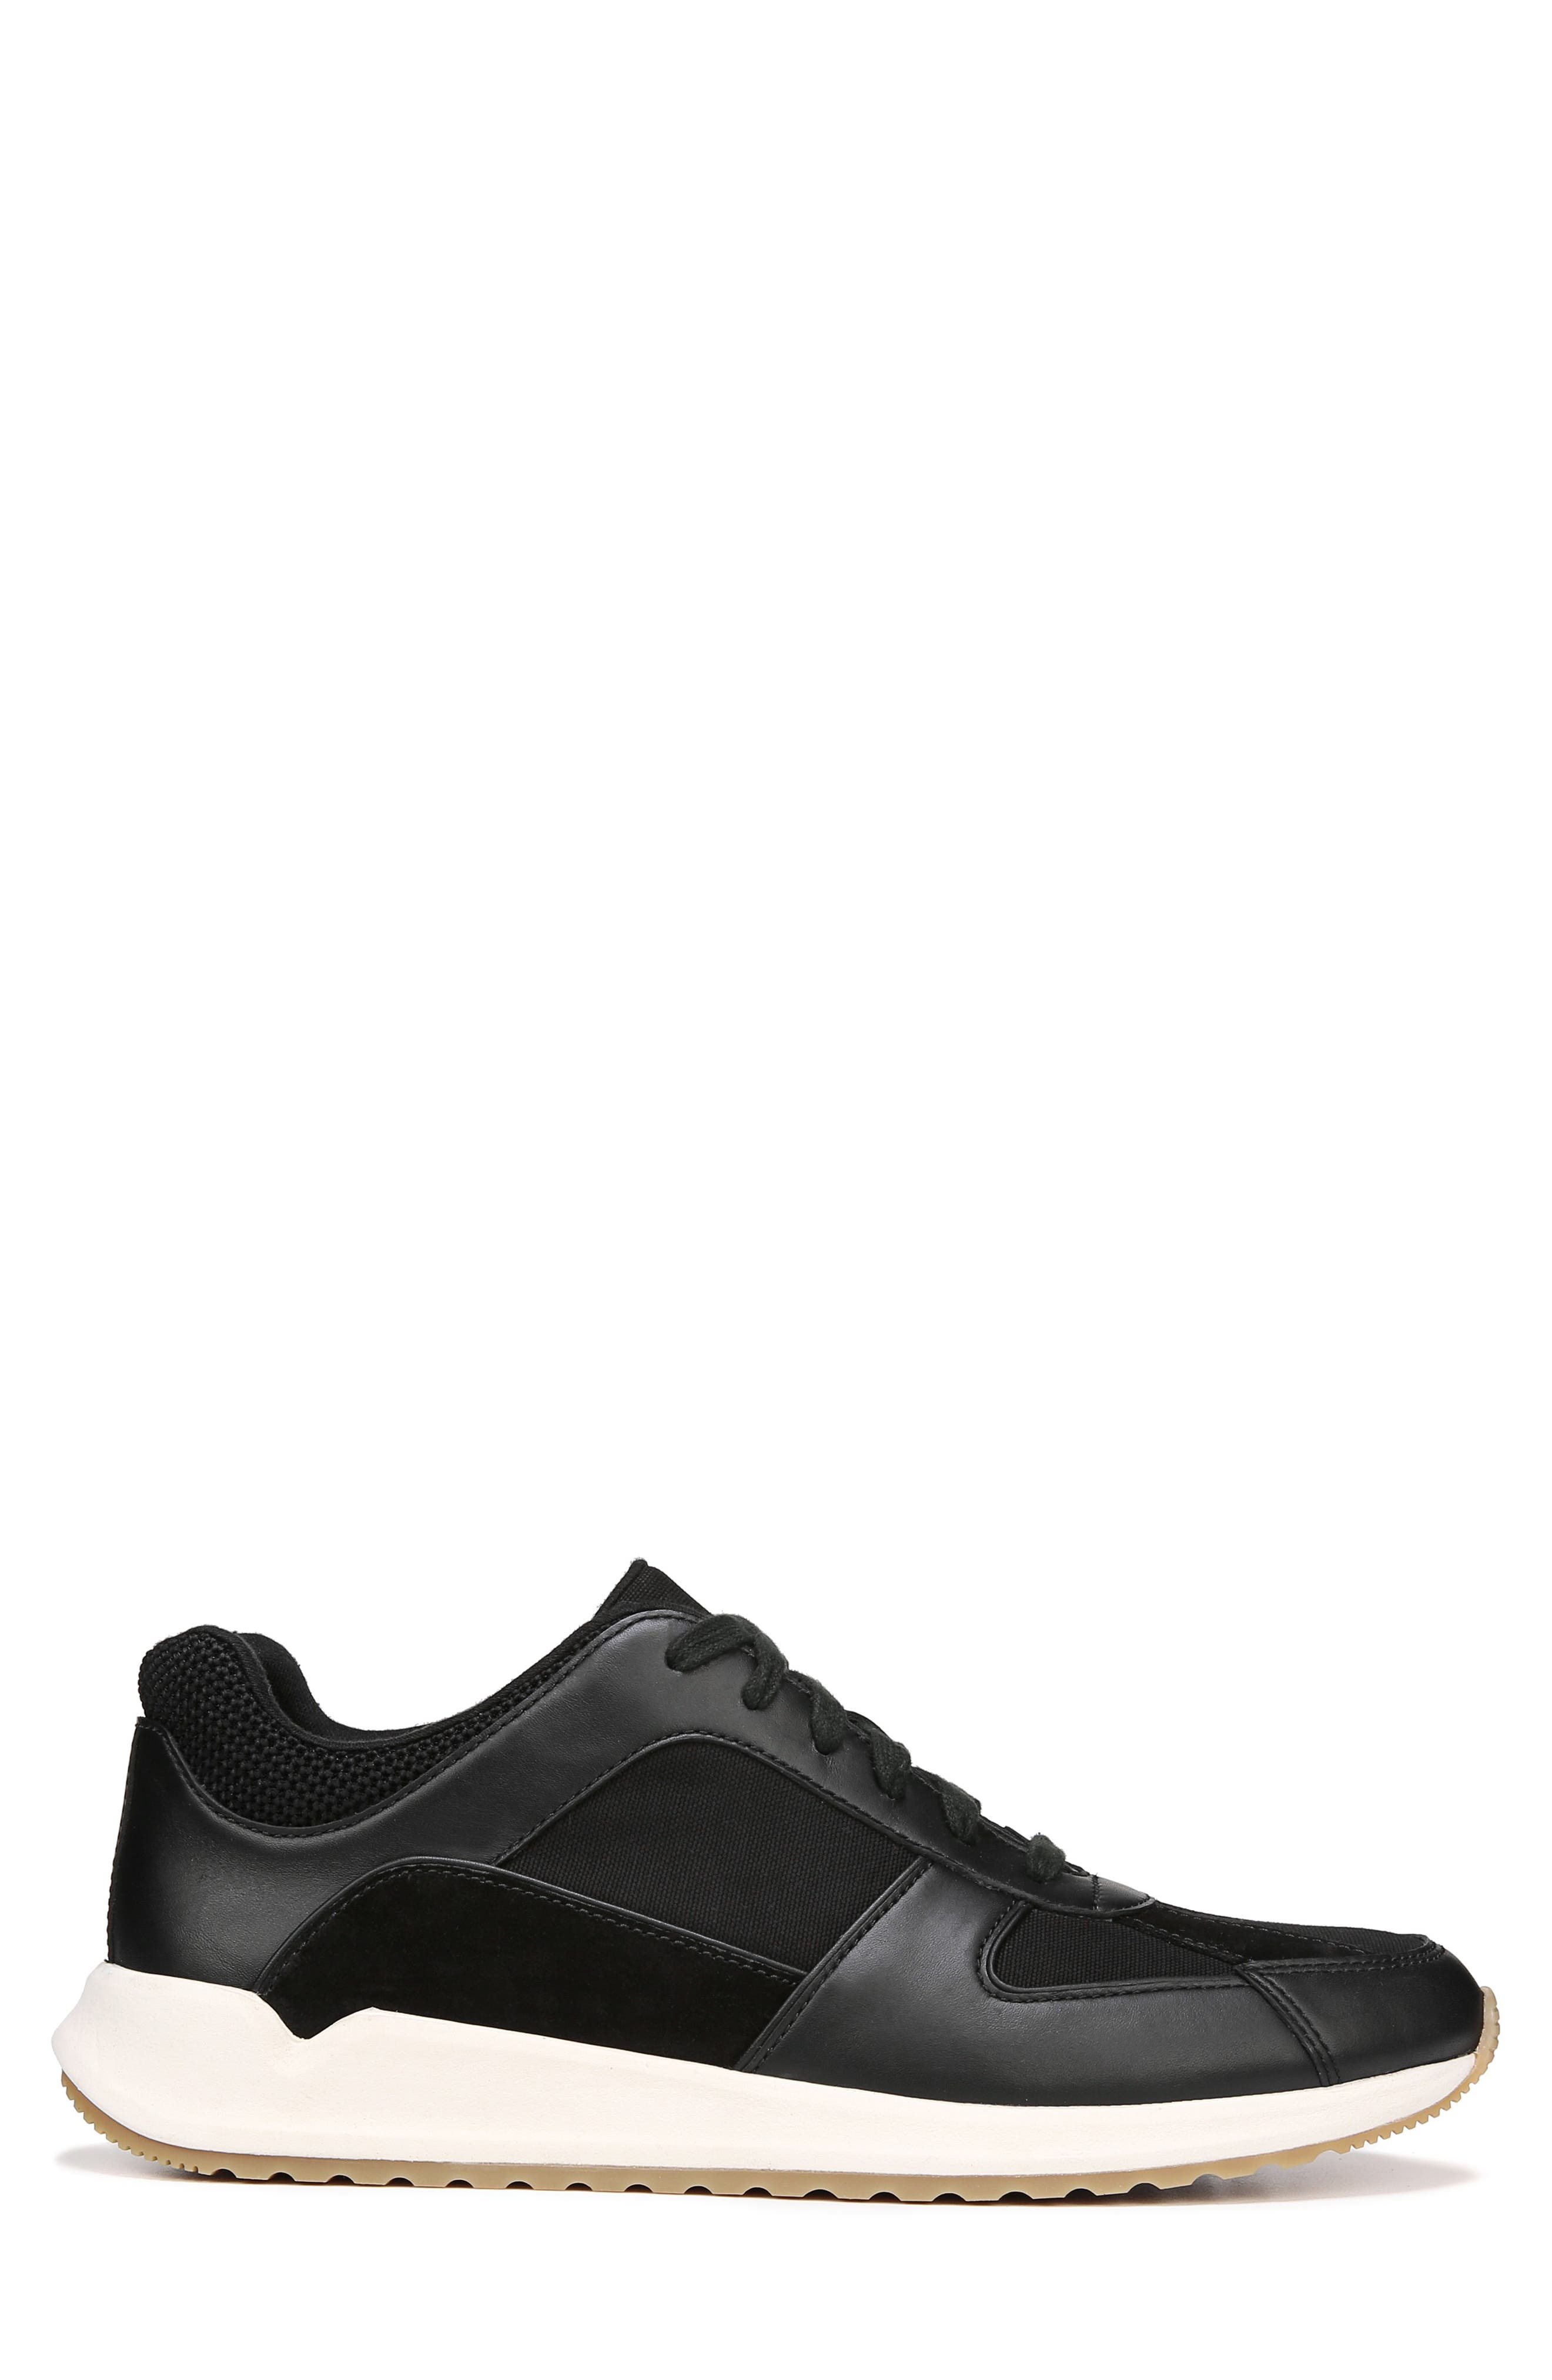 Griffin Sneaker,                             Alternate thumbnail 3, color,                             BLACK/ MADDOX